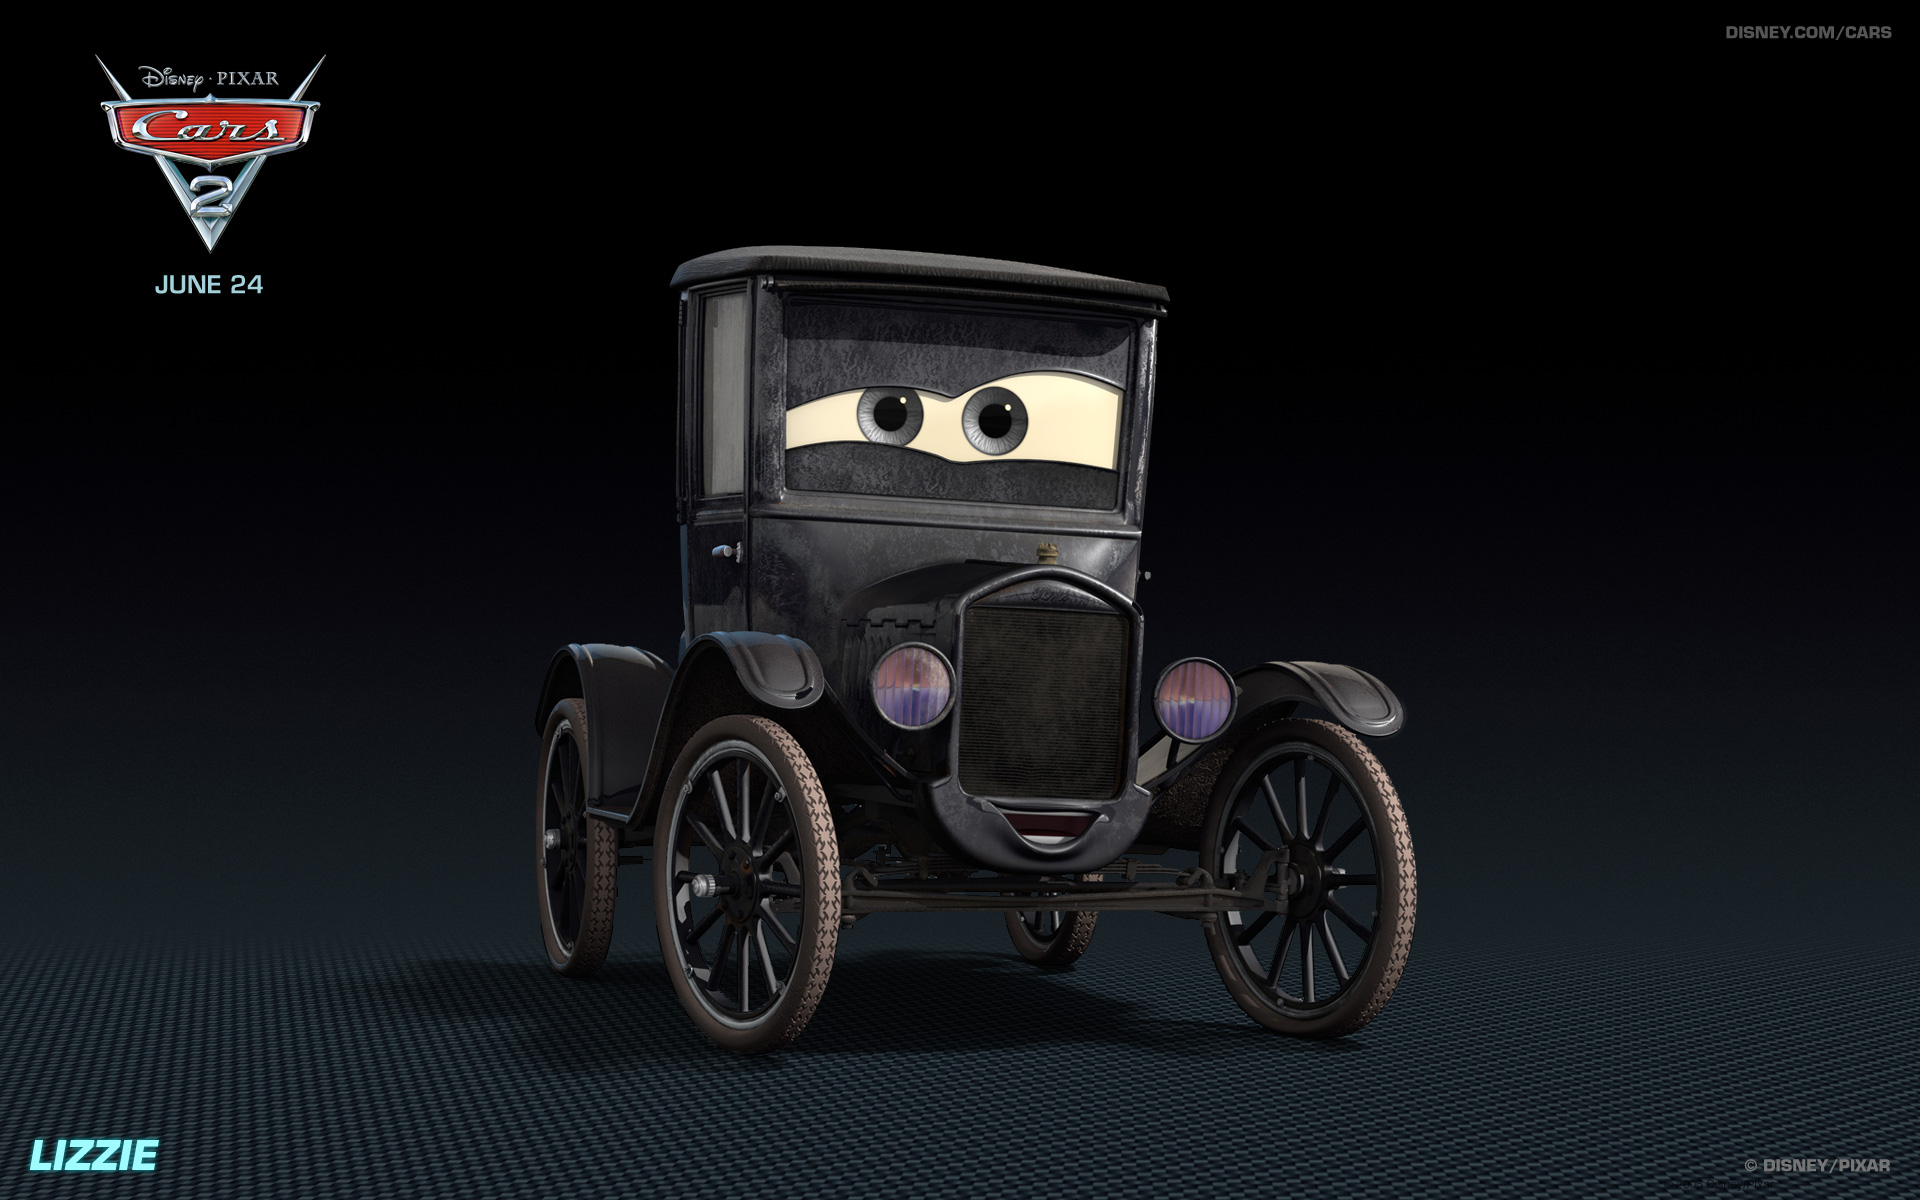 Lizzie The Old Car From Disneys Cars HD Desktop Wallpaper - Old car from cars